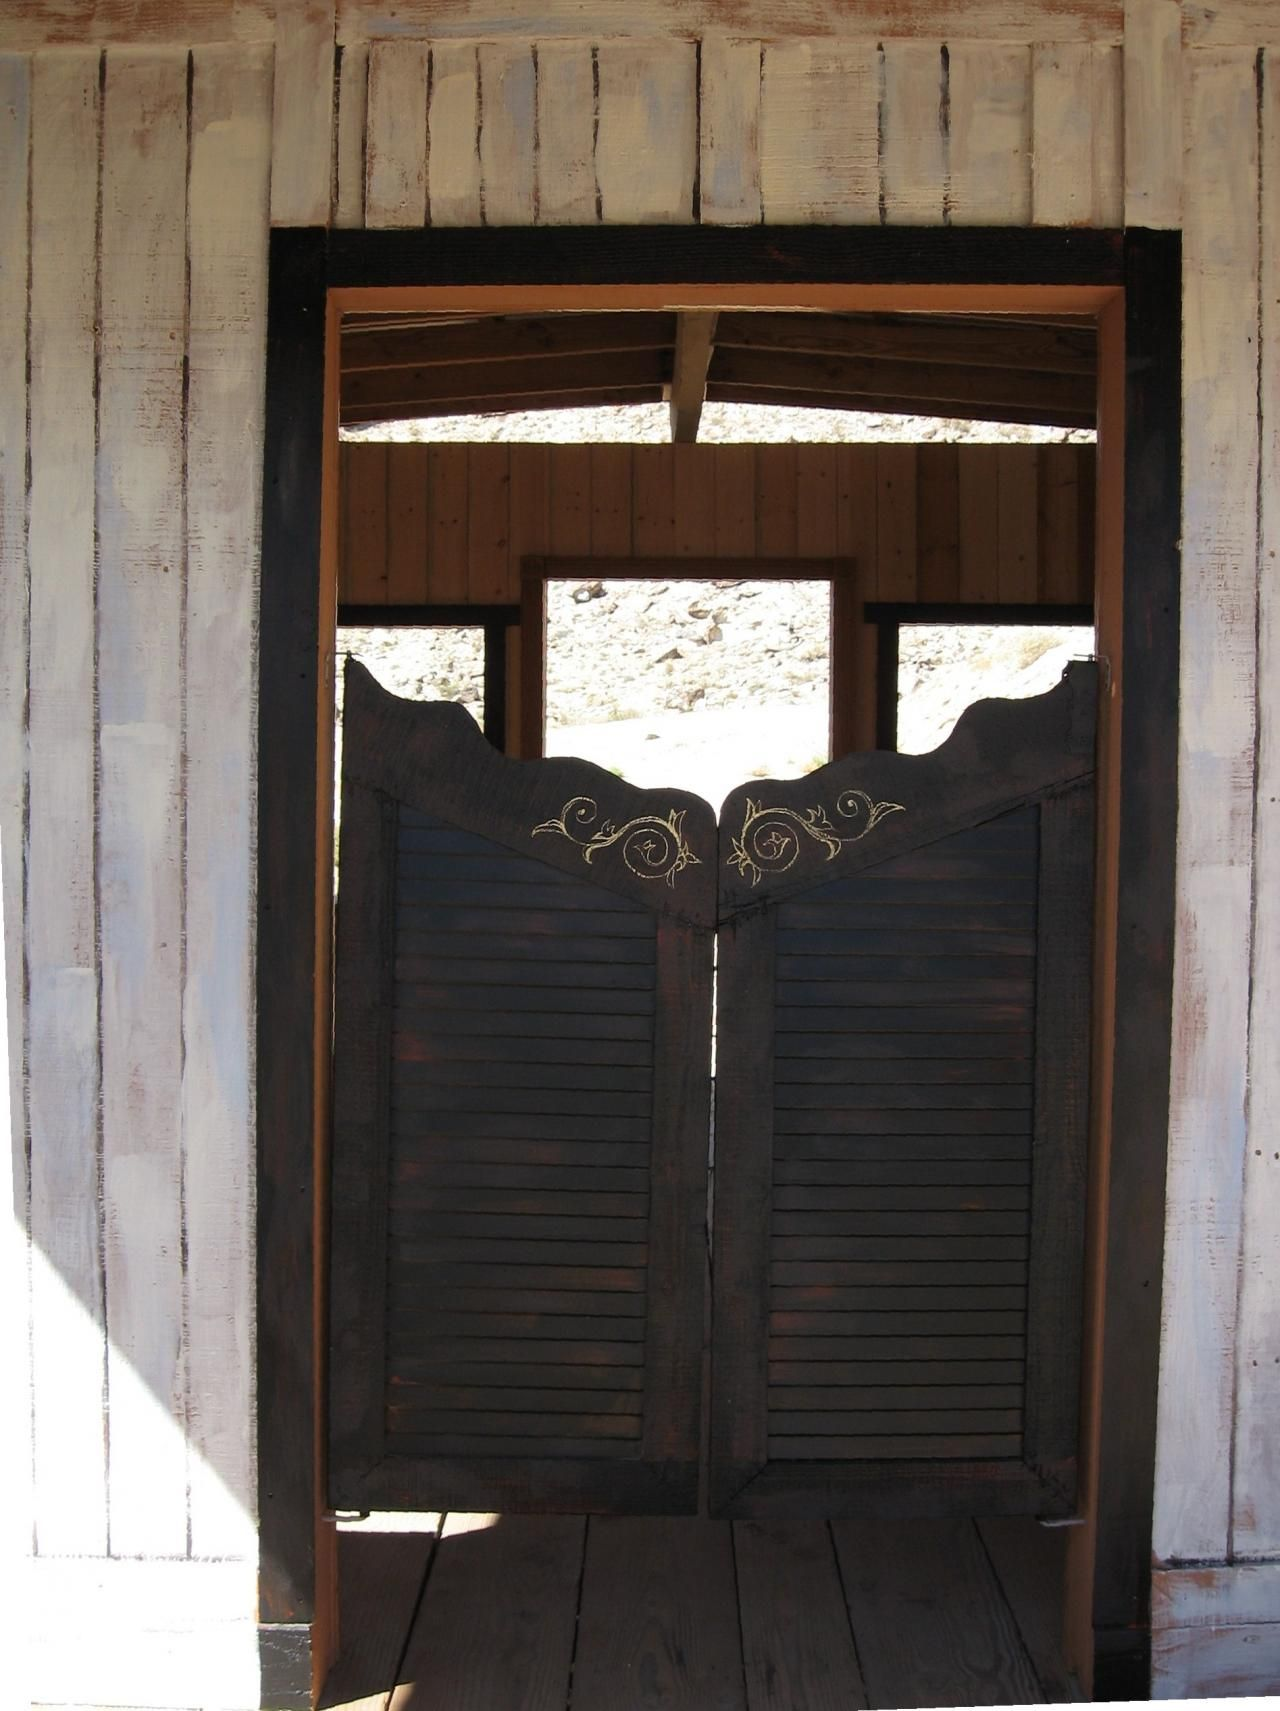 Saloon doors google search western saloon pinterest for Porte saloon western